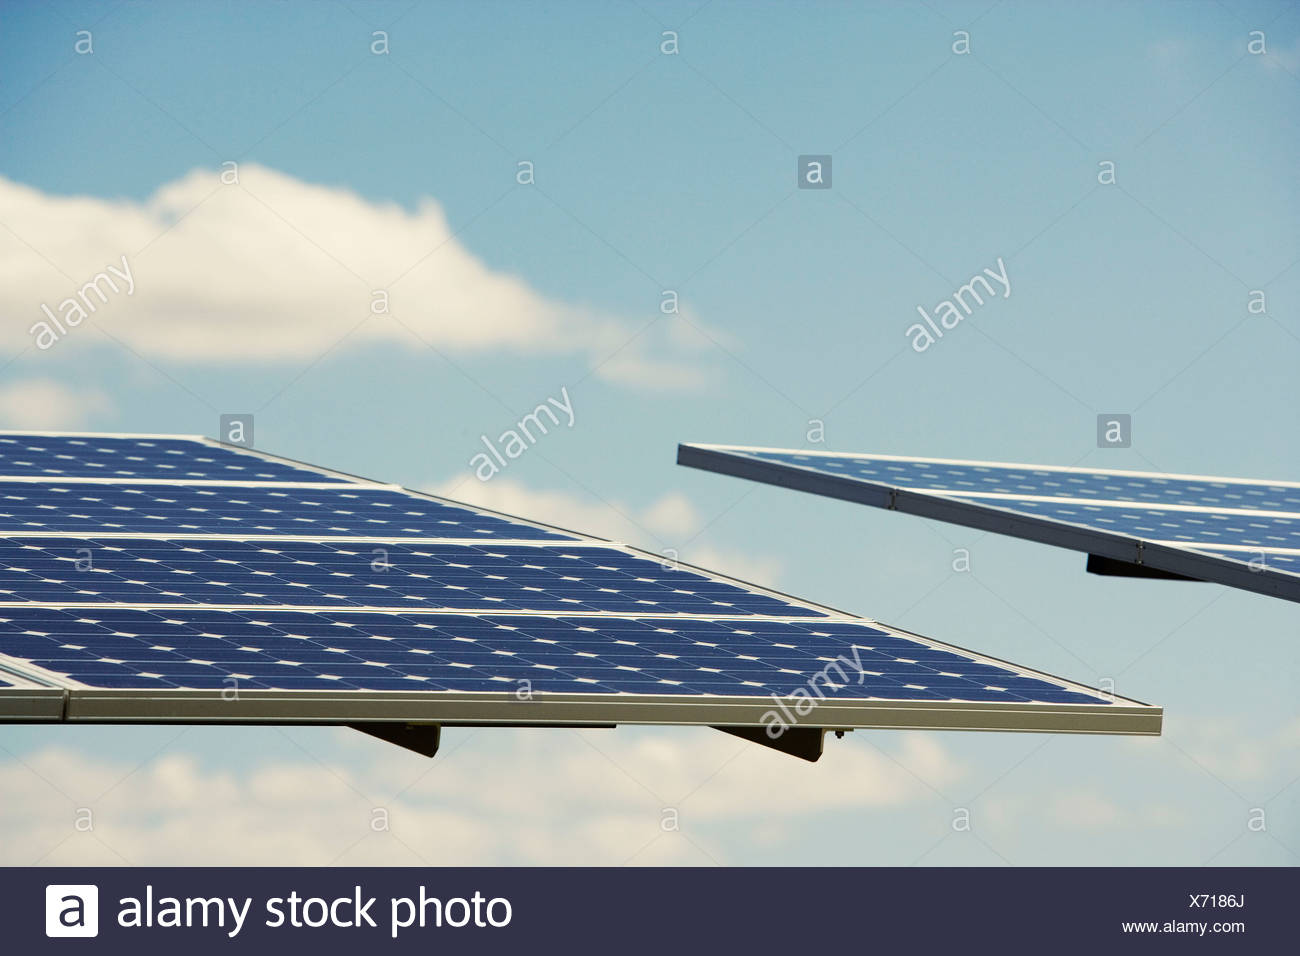 Photovoltaic panels tilted to sun - Stock Image